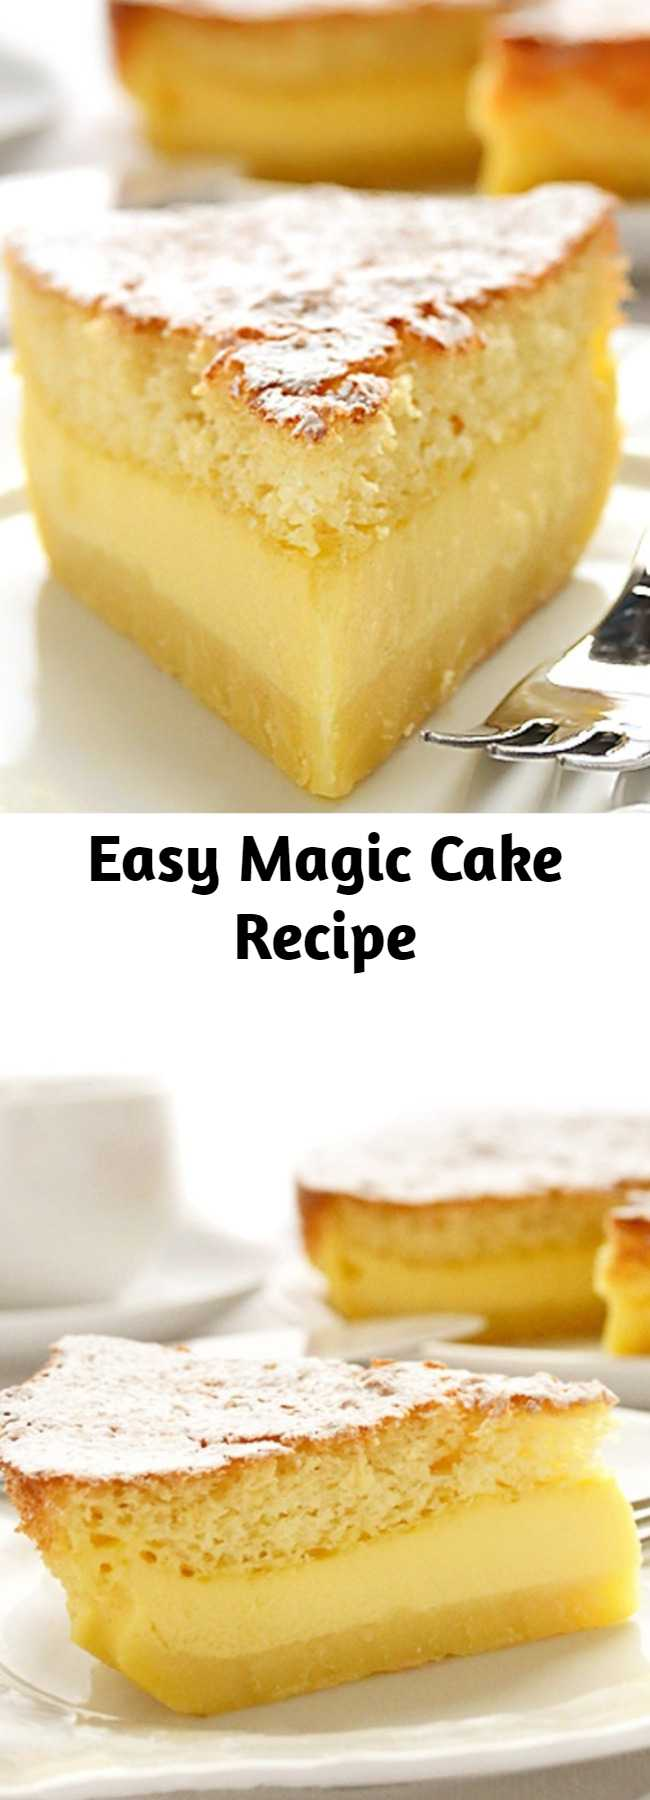 Easy Magic Cake Recipe - Vanilla Magic Cake – 1 batter during baking magically separates into 3 layers: dense on the bottom, custard in the middle, sponge on top.